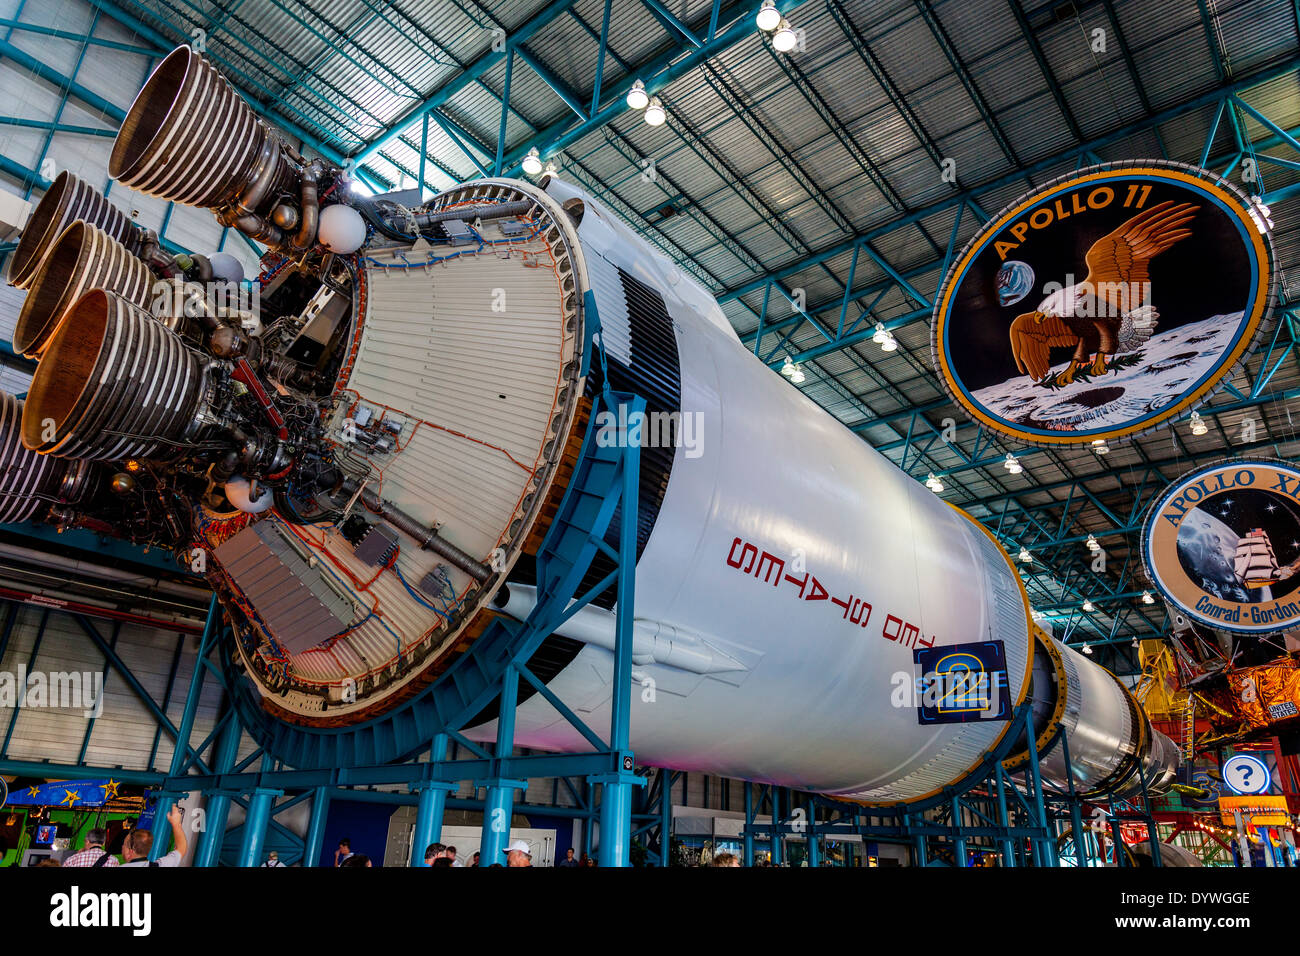 apollo 5 kennedy space center -#main